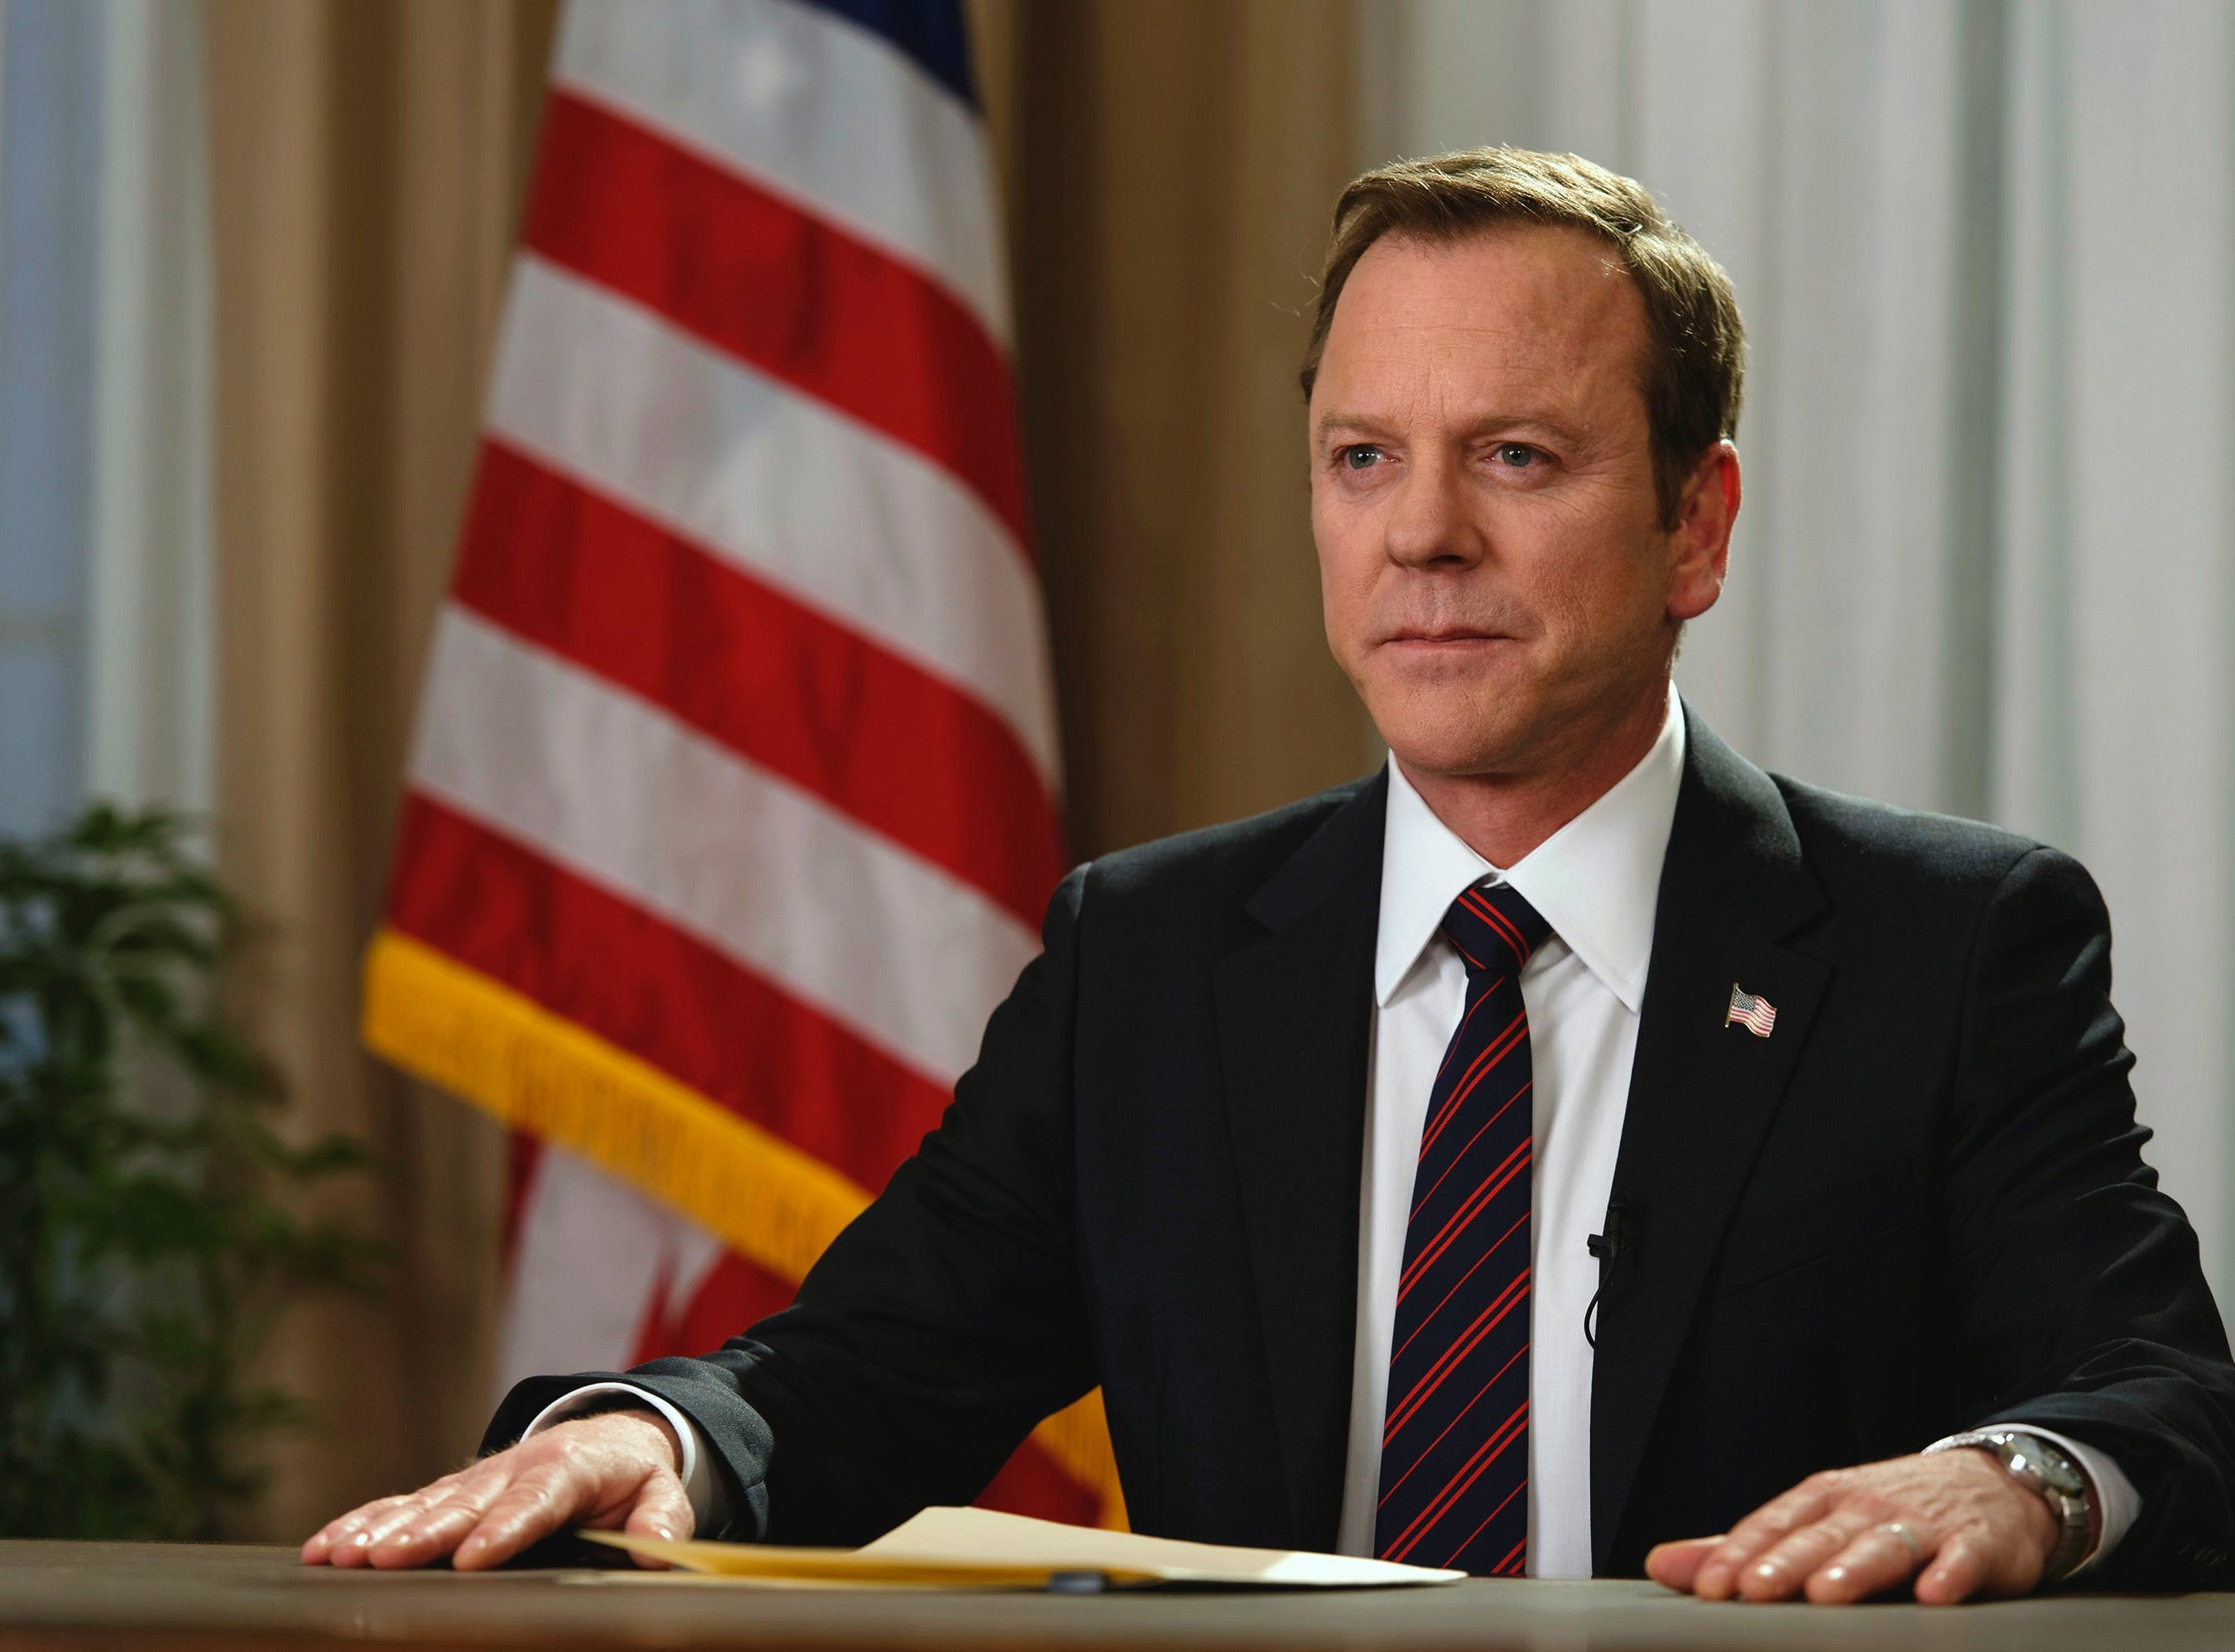 """Designated Survivor"" (ABC, Netflix, 2016-present): Thomas Kirkman (Kiefer Sutherland) becomes the unlikely President of the United States after a terrorist attack."